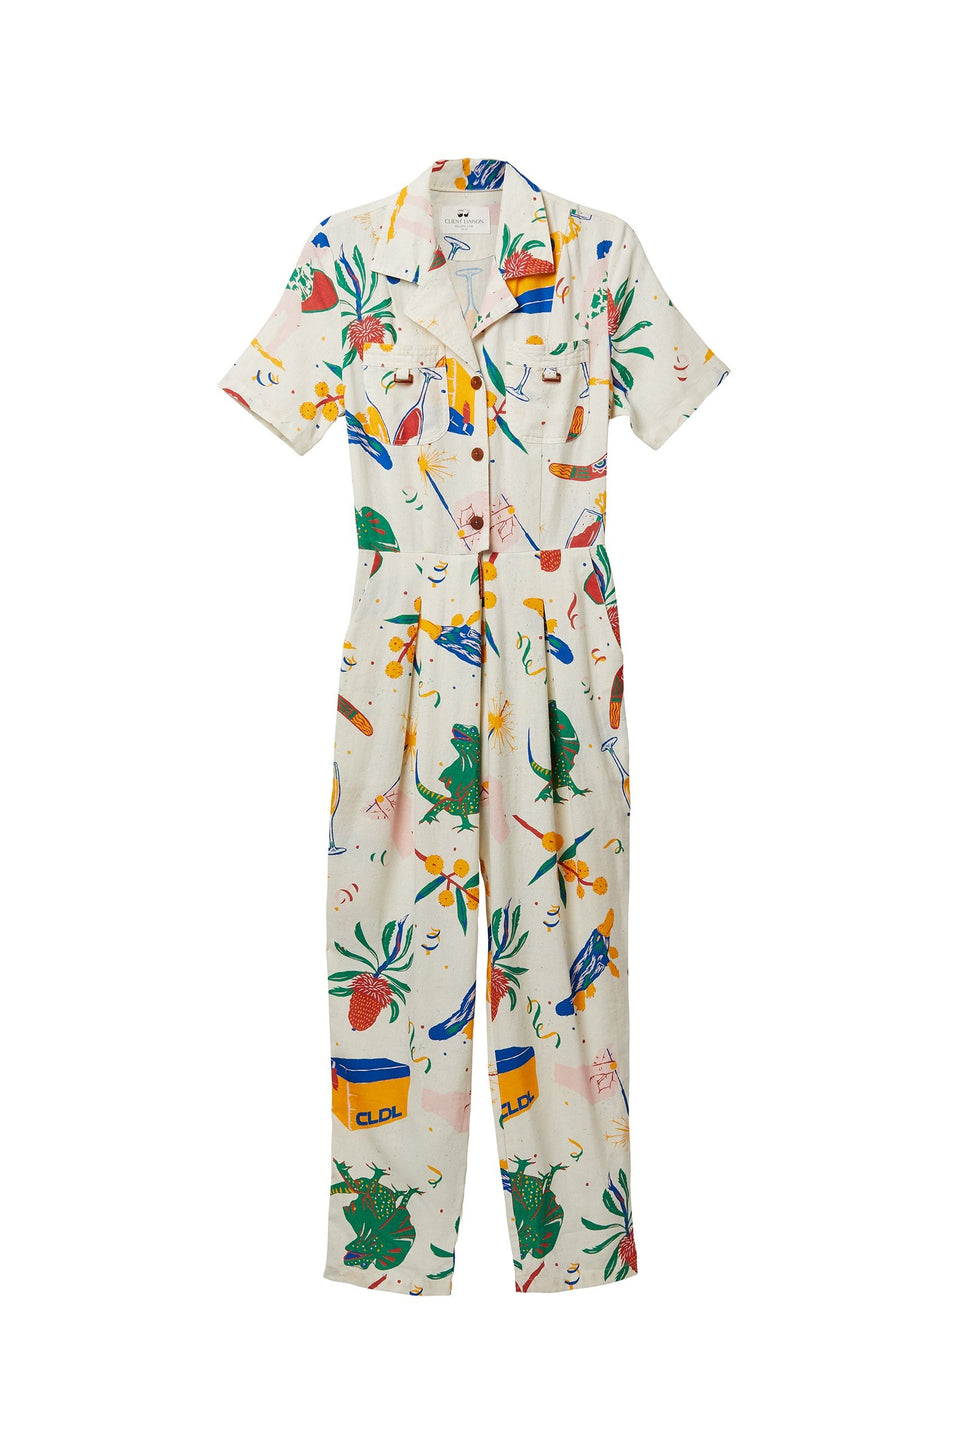 Long Lunch Jumpsuit (CLDL-030)